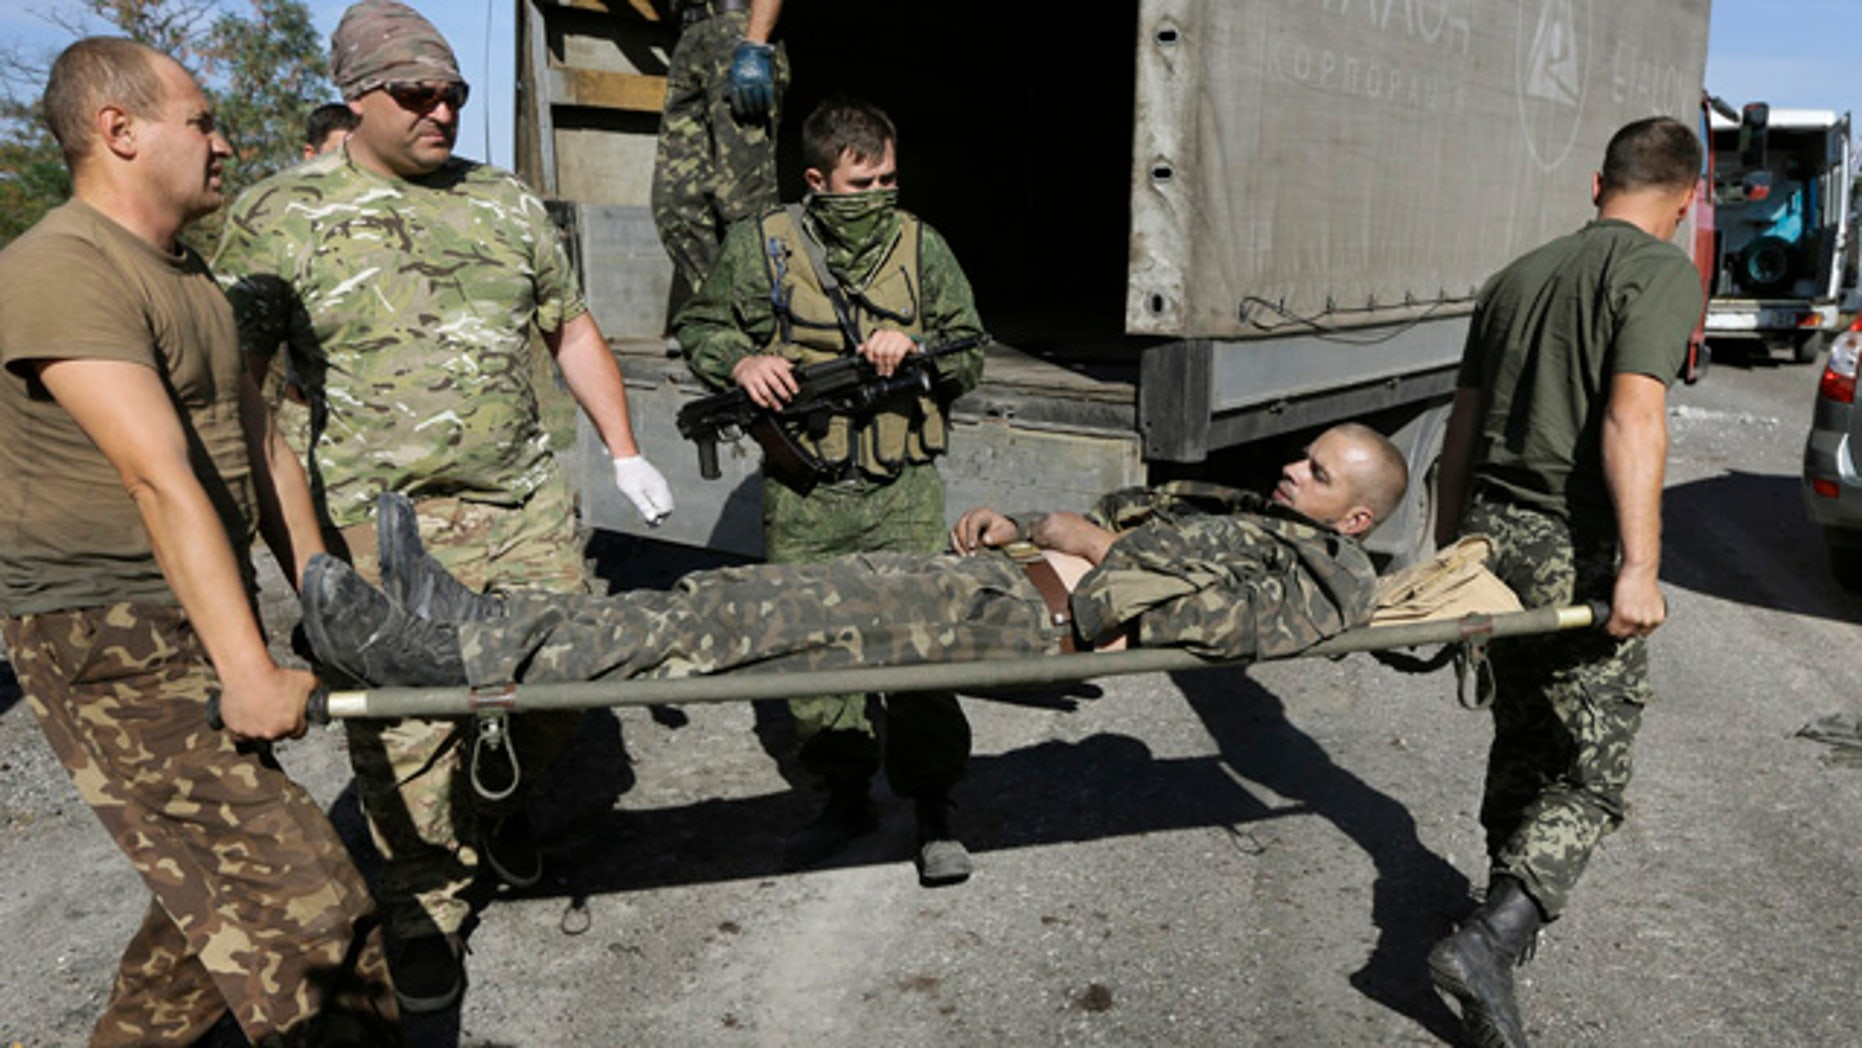 August 30, 2014: Ukrainian army personnel carry an Ukrainian government soldier injured by tank fire to an ambulance in the rebel-held town of Starobesheve.  Half an hour later the soldier died.  (AP Photo/Sergei Grits)